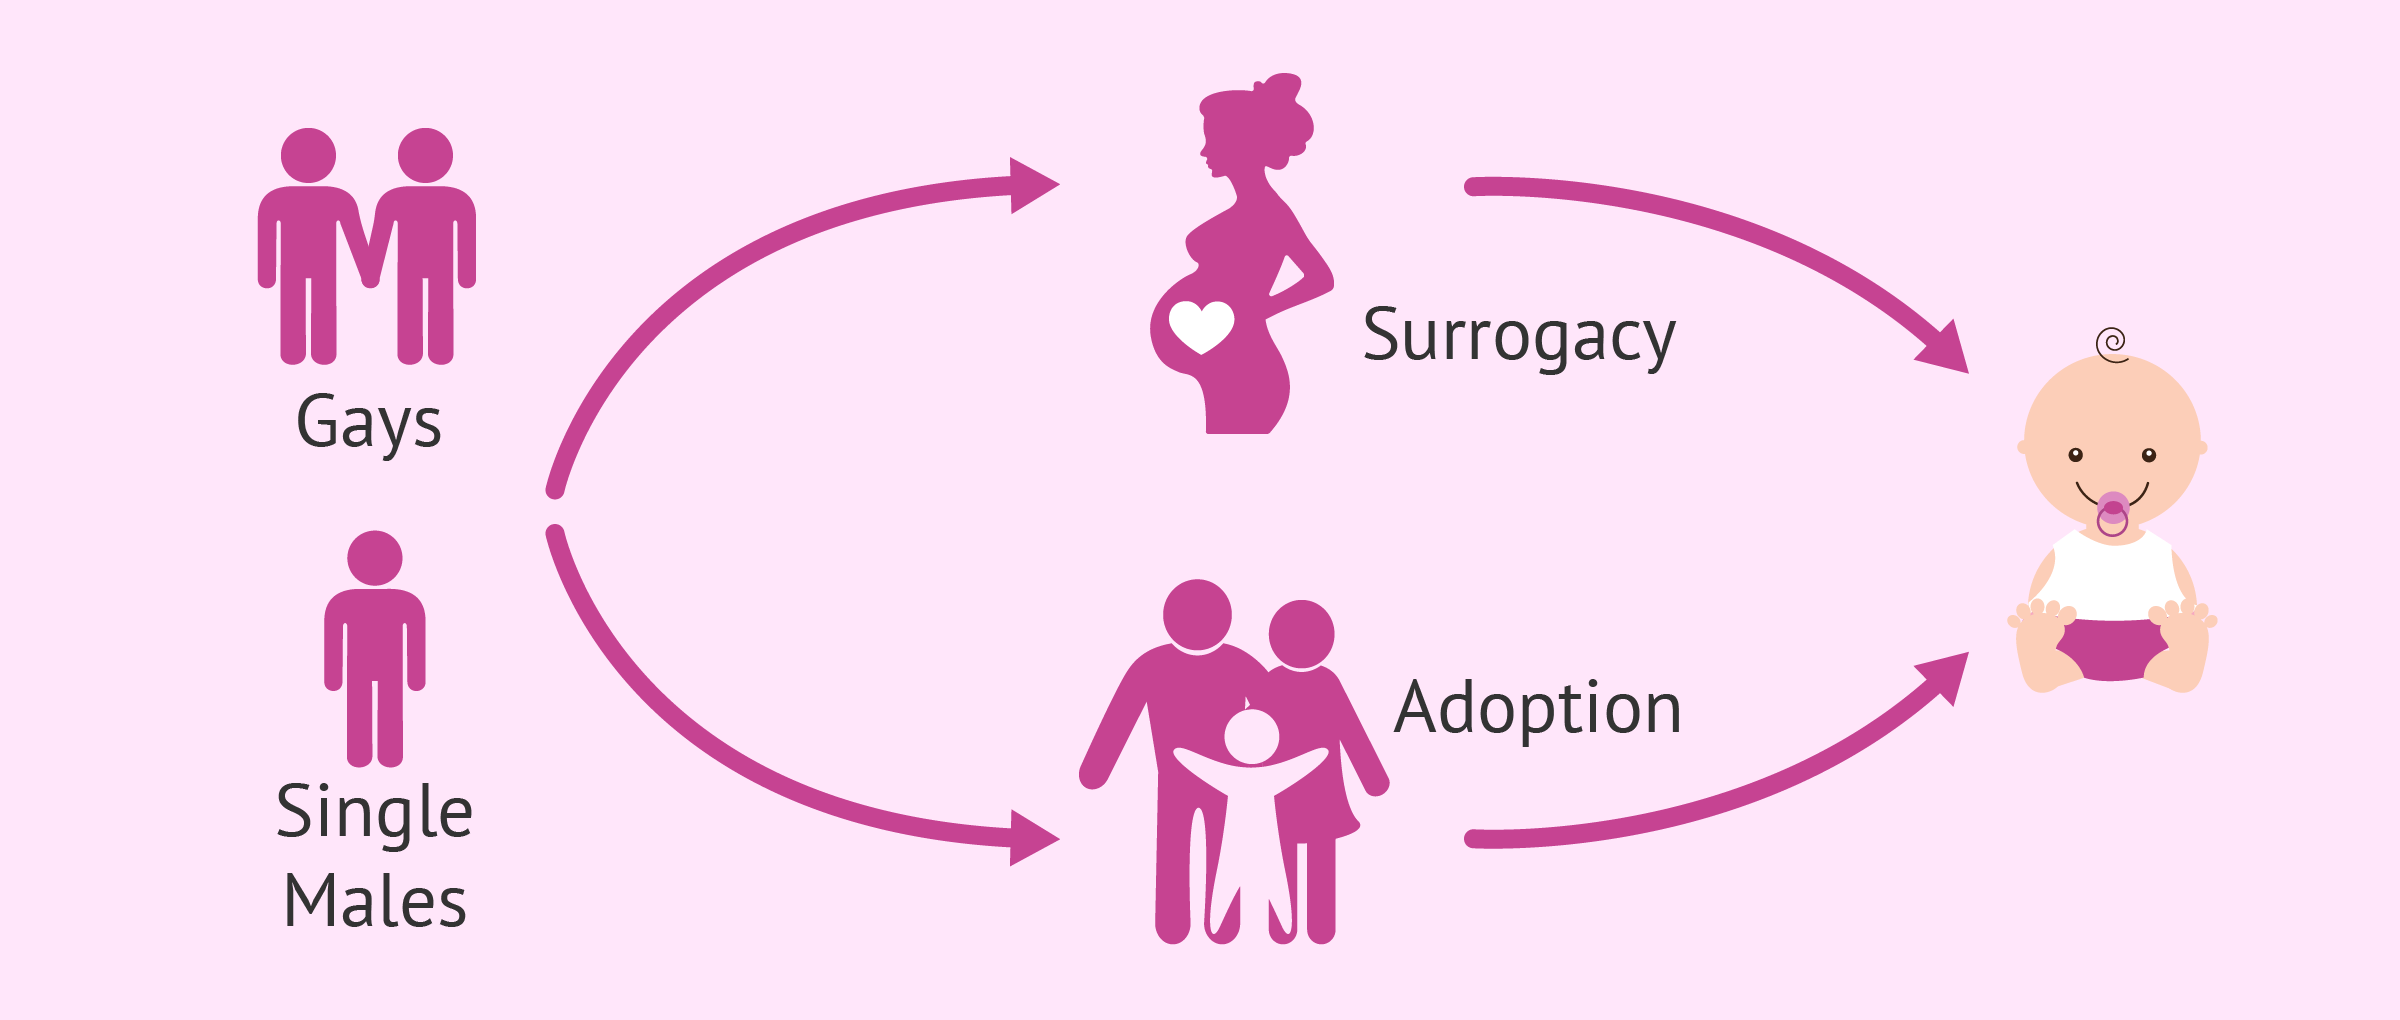 Paternity for gays and single men: adoption and surrogacy